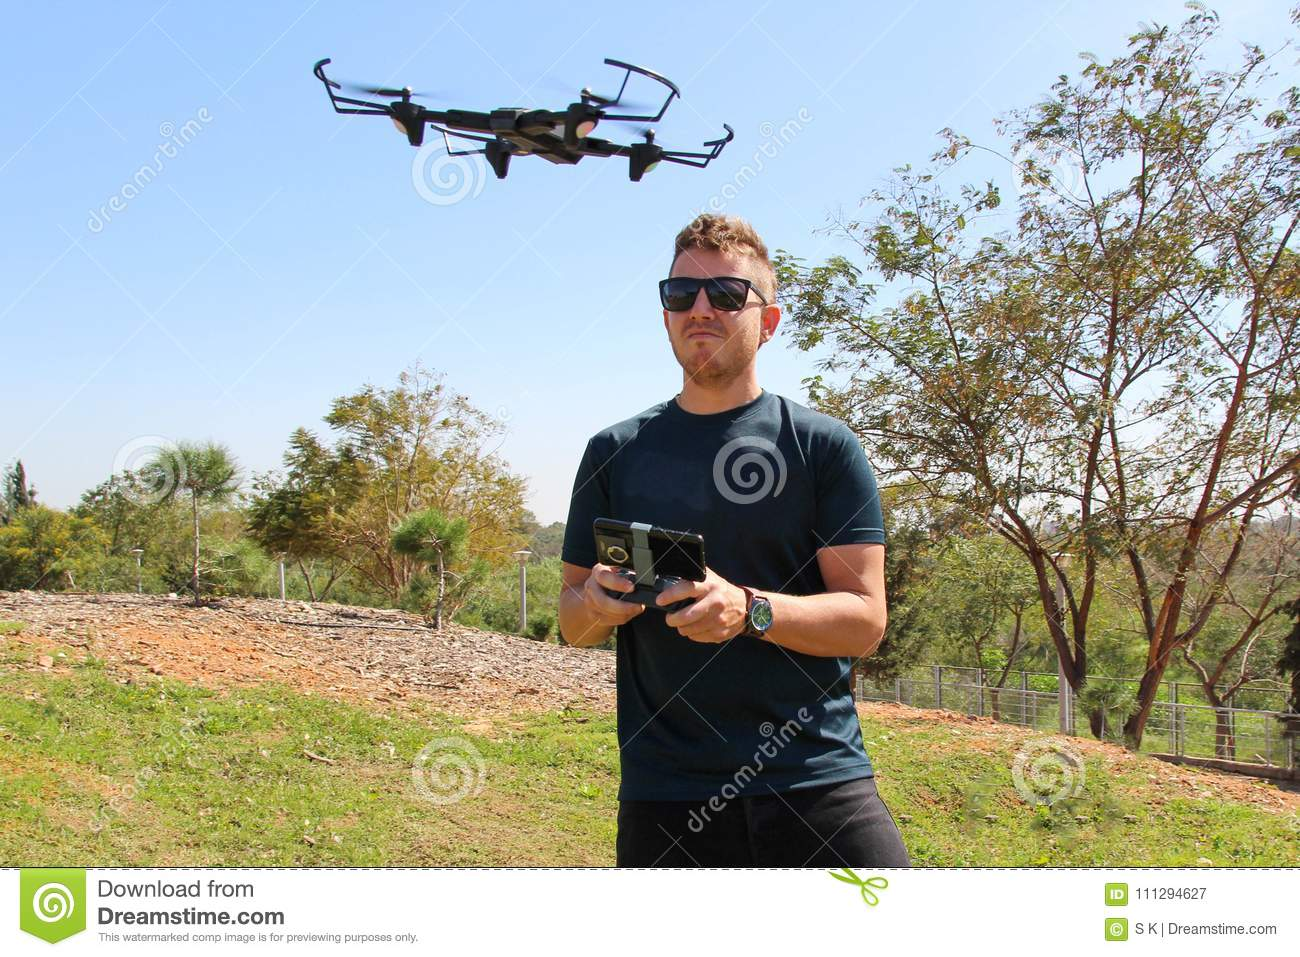 Young man with remote control cell phone flying drone. Sunny green nature